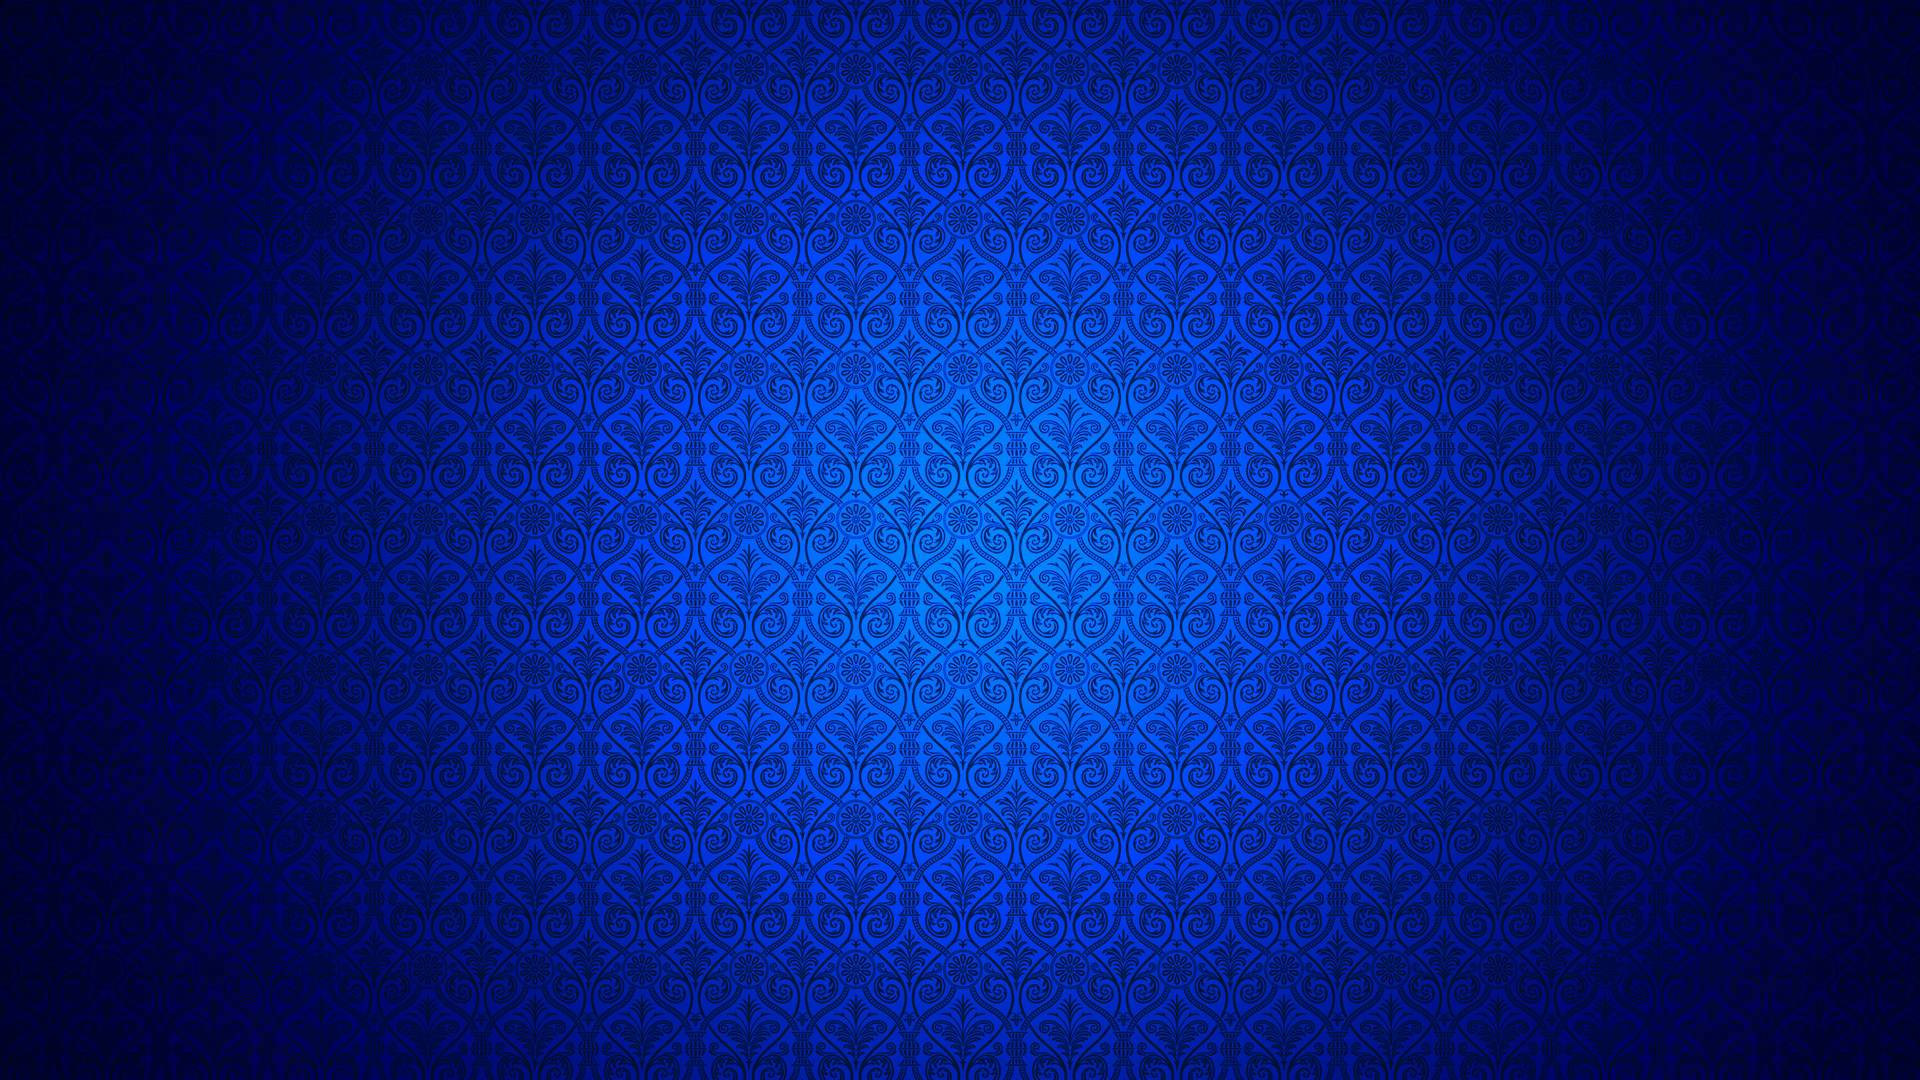 blue abstract background wallpaper - photo #49